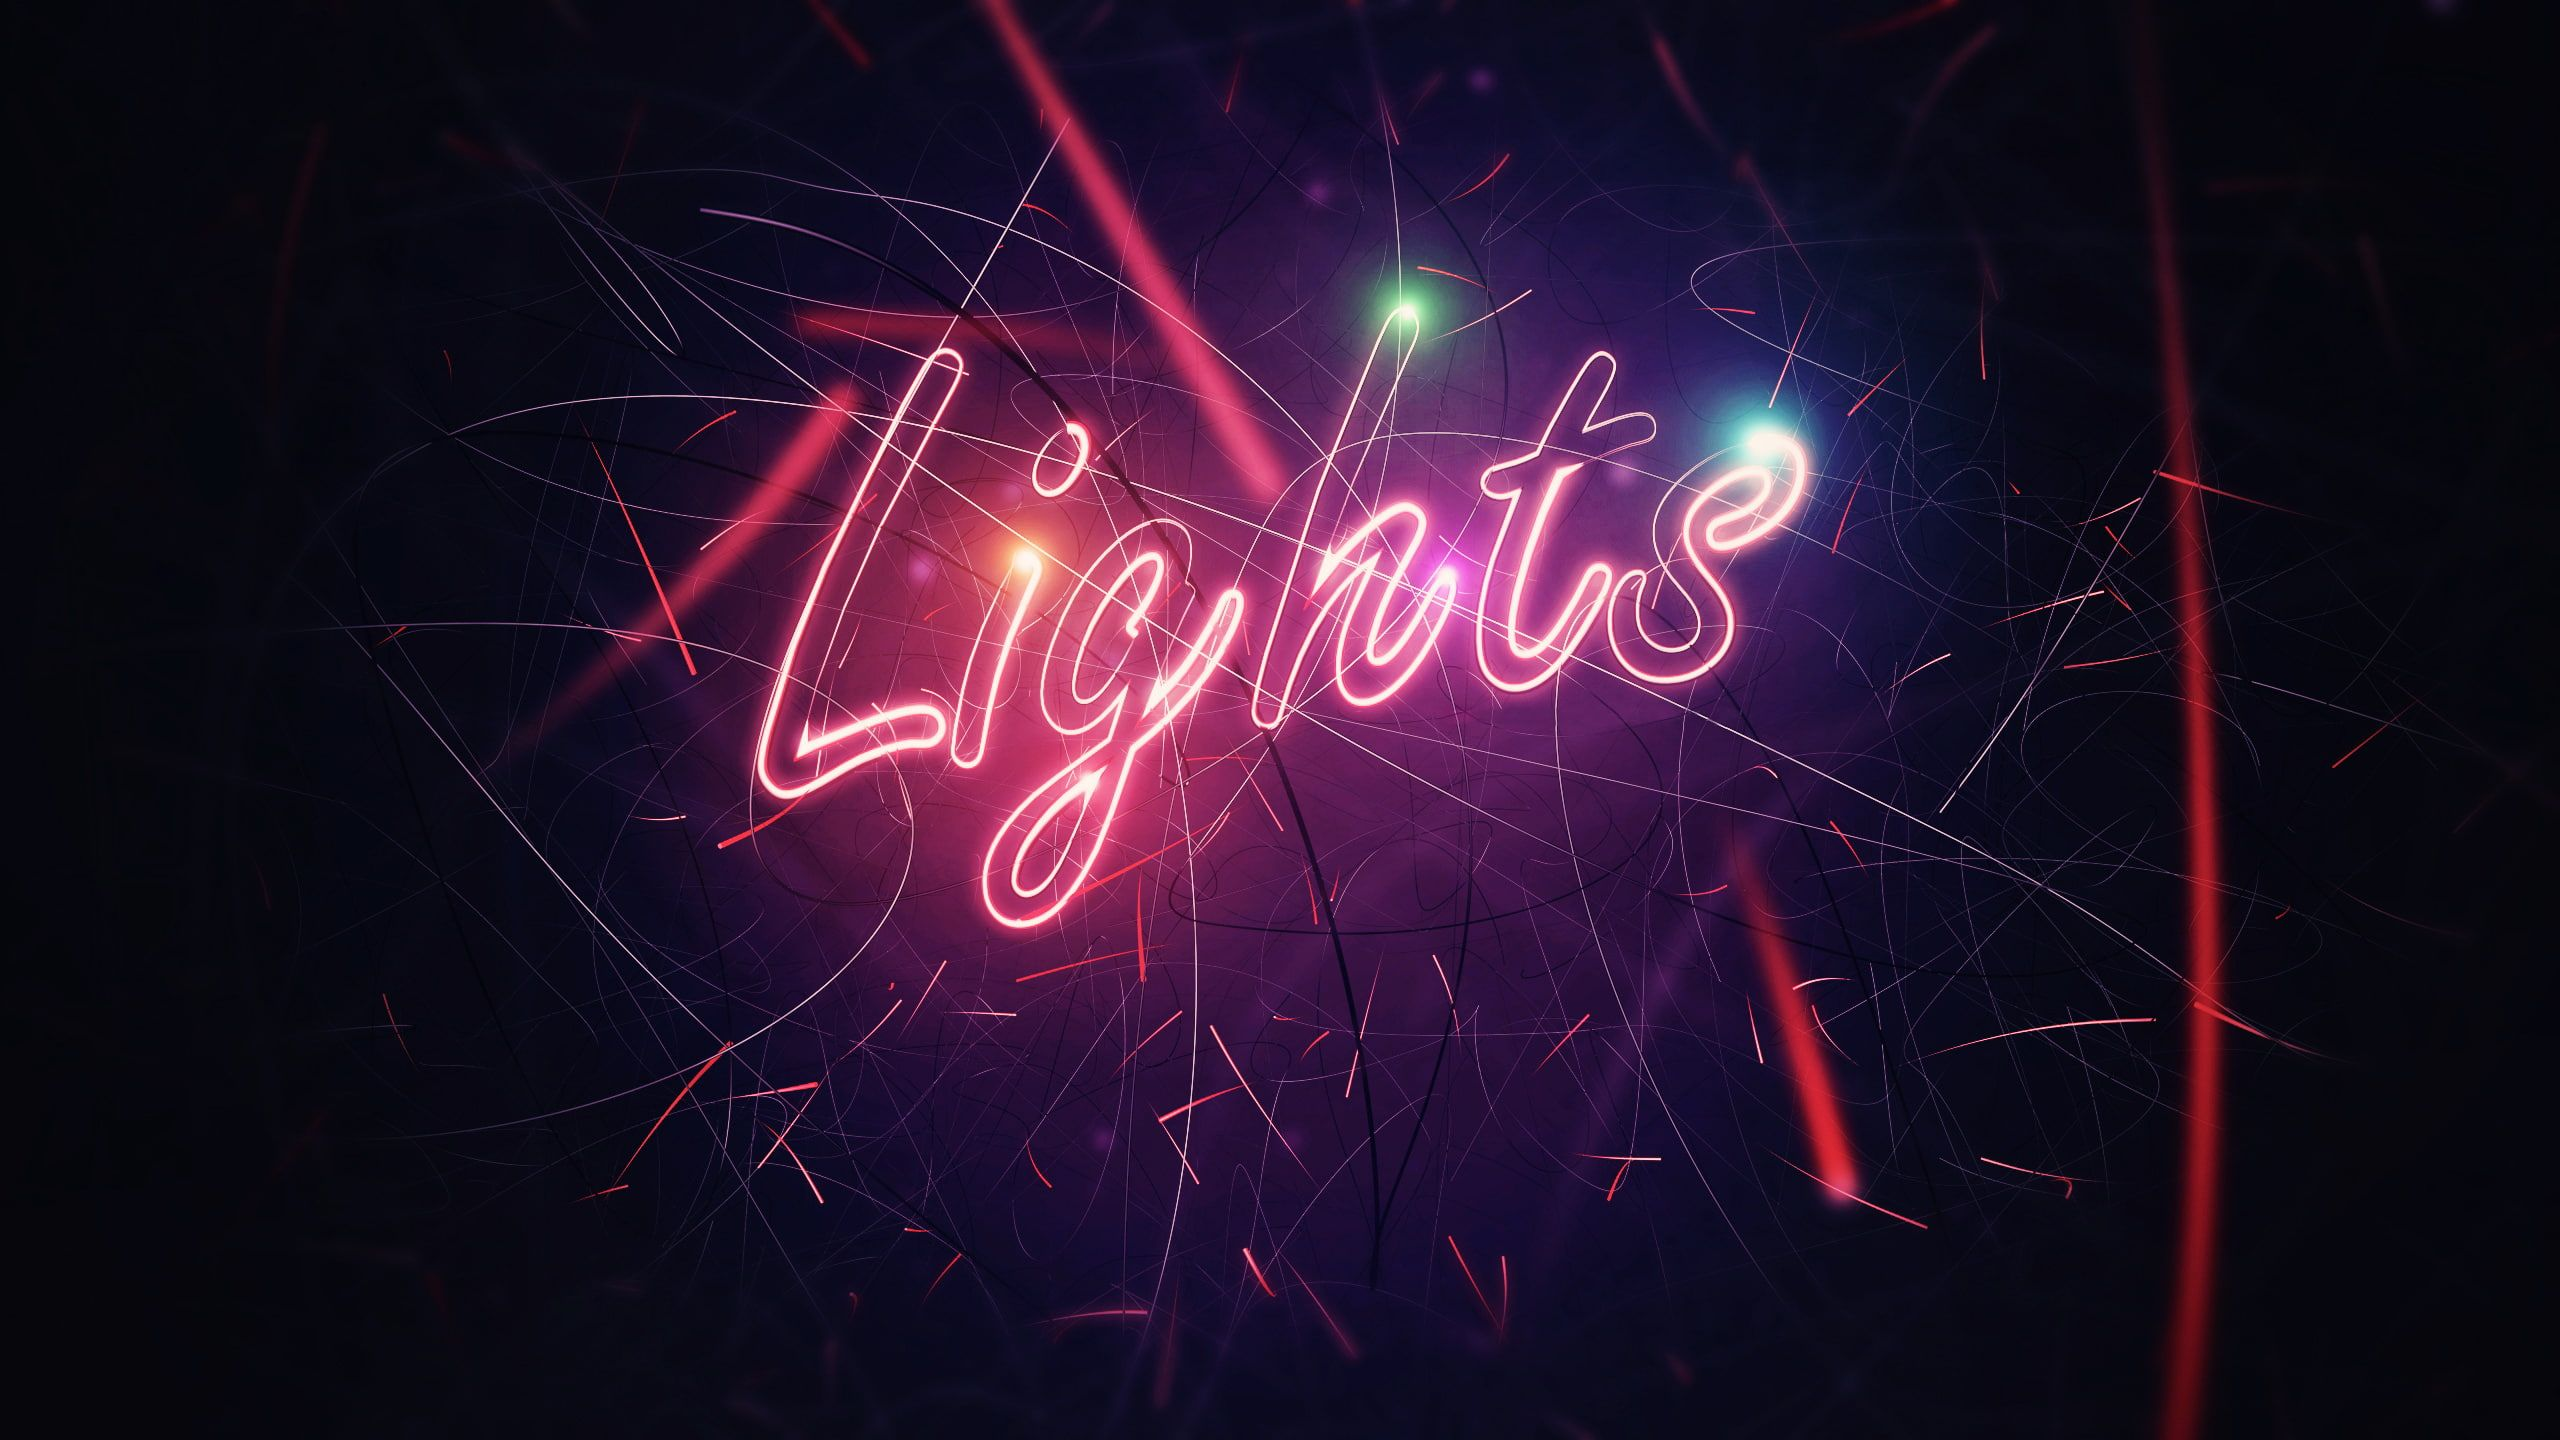 Neon Lights Digital Art Typography 2k Wallpaper Hdwallpaper Desktop Neon Light Wallpaper Wallpaper Pictures Lit Wallpaper